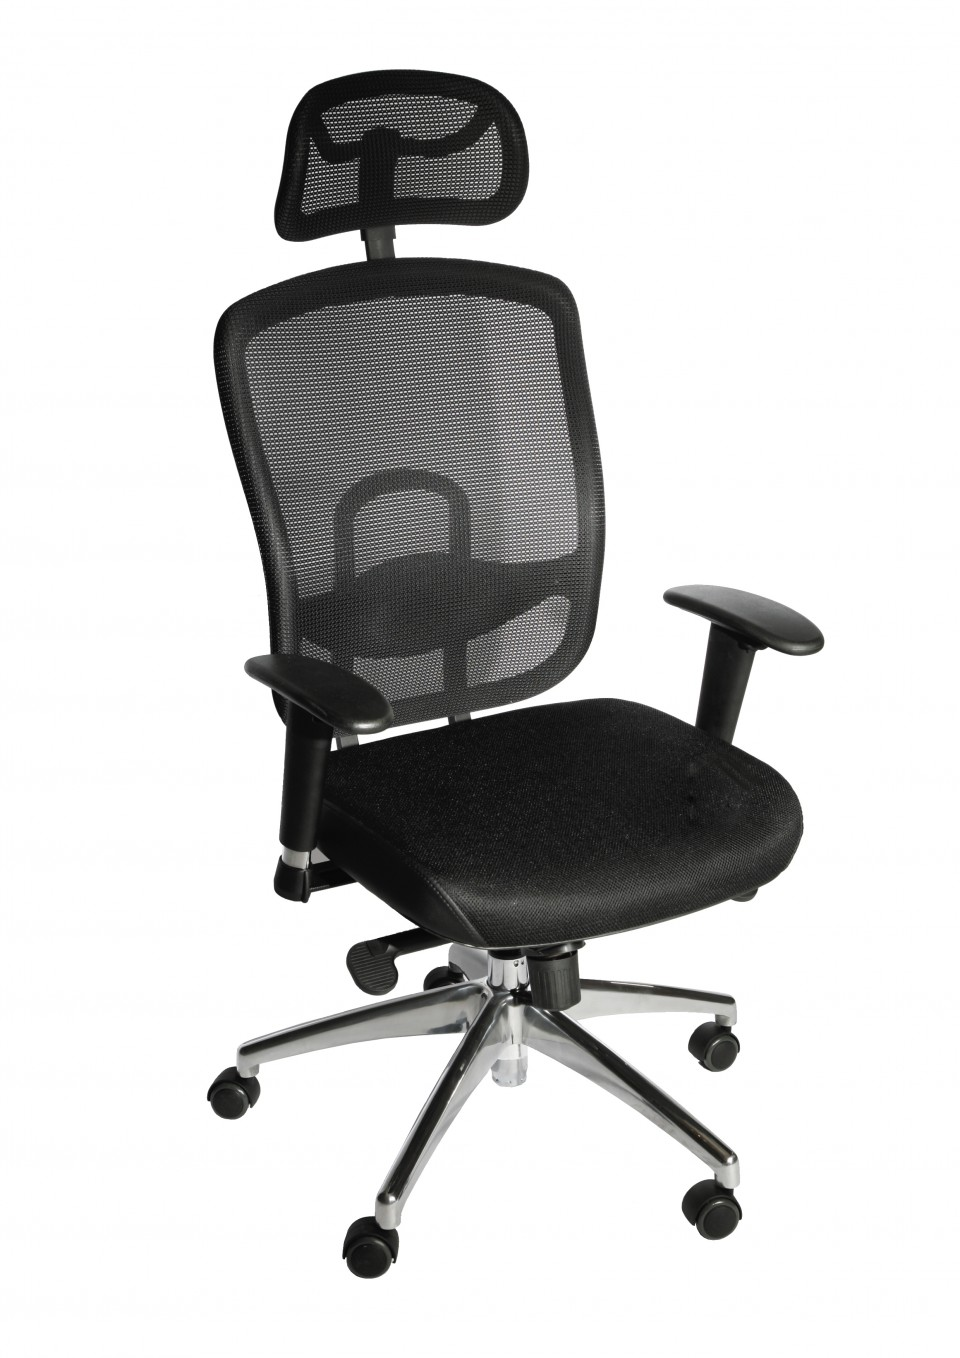 fauteuil de bureau ergonomique ergo achat si ges ergonomiques 289 00. Black Bedroom Furniture Sets. Home Design Ideas